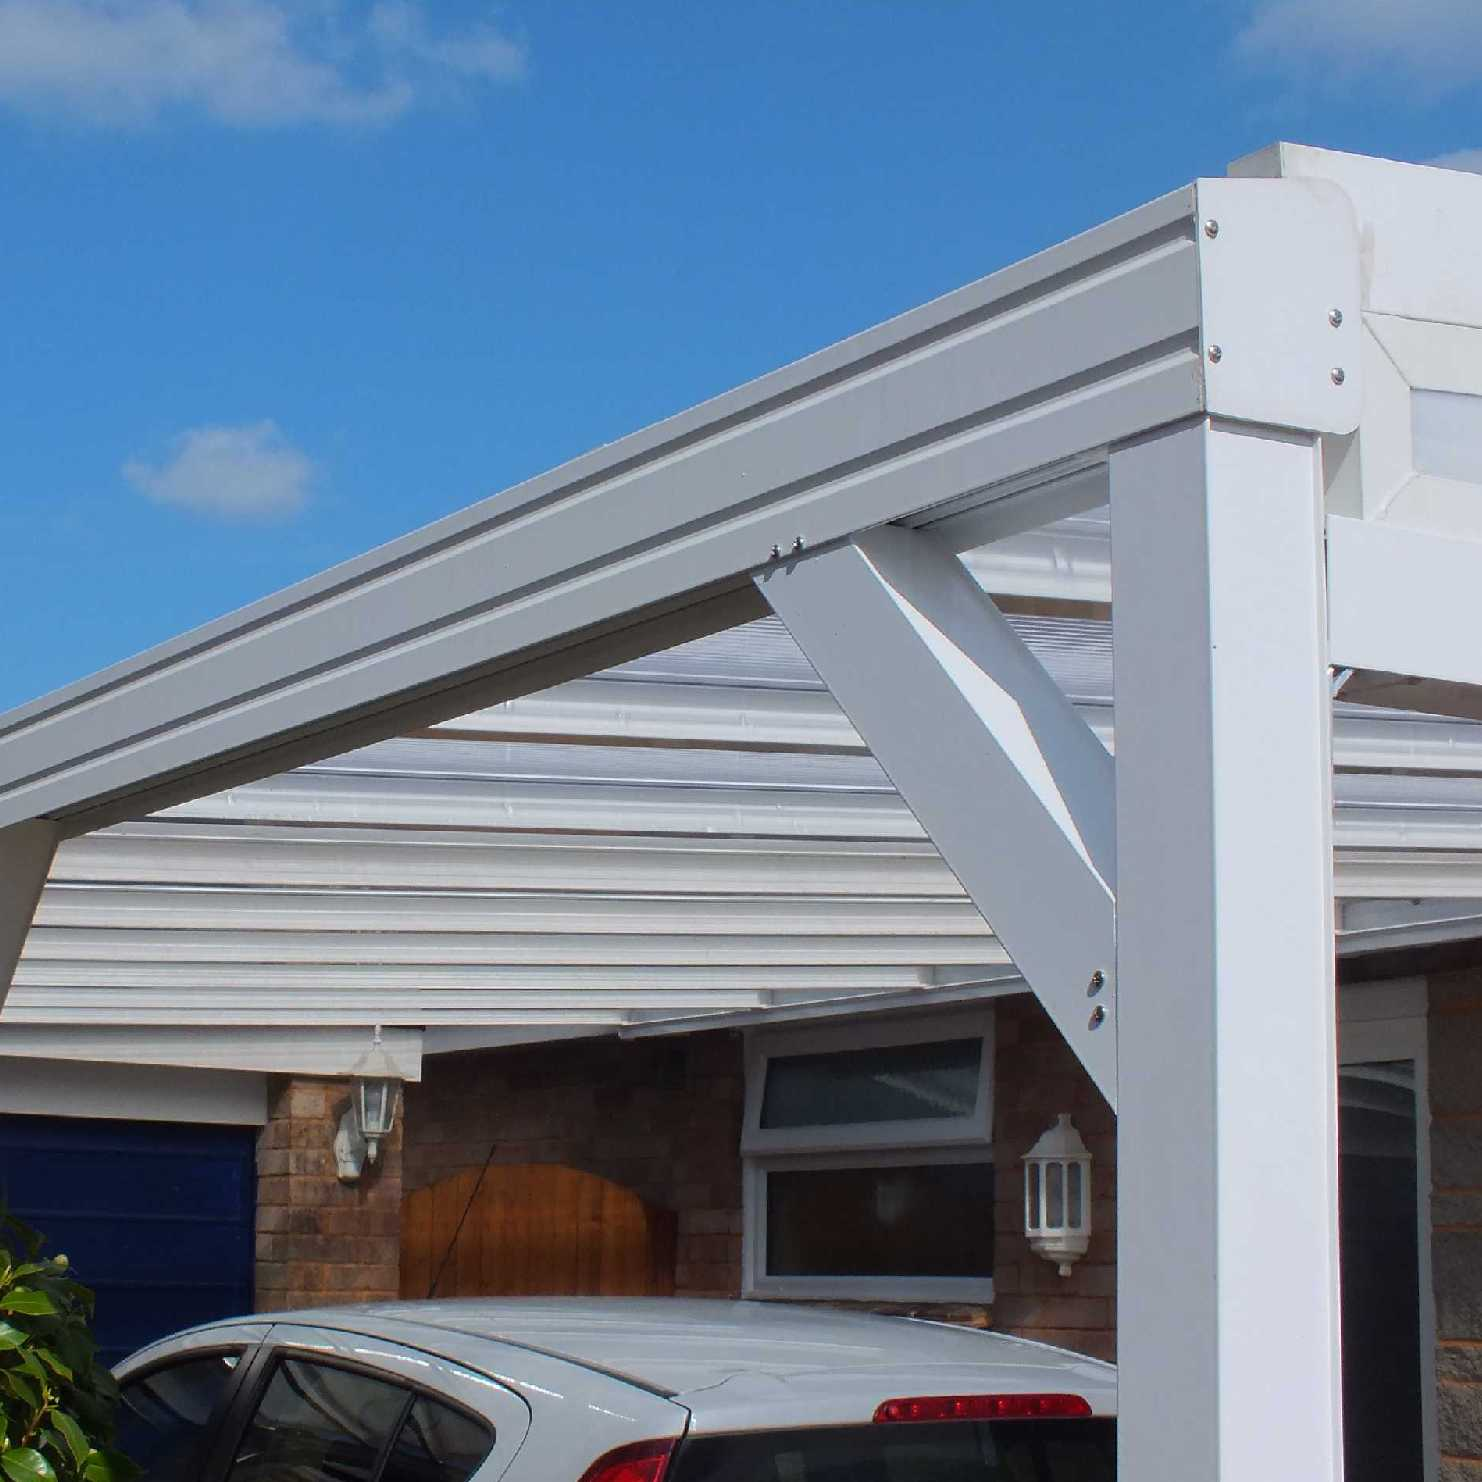 Buy Omega Smart White Lean-To Canopy with 16mm Polycarbonate Glazing - 3.5m (W) x 4.5m (P), (3) Supporting Posts online today